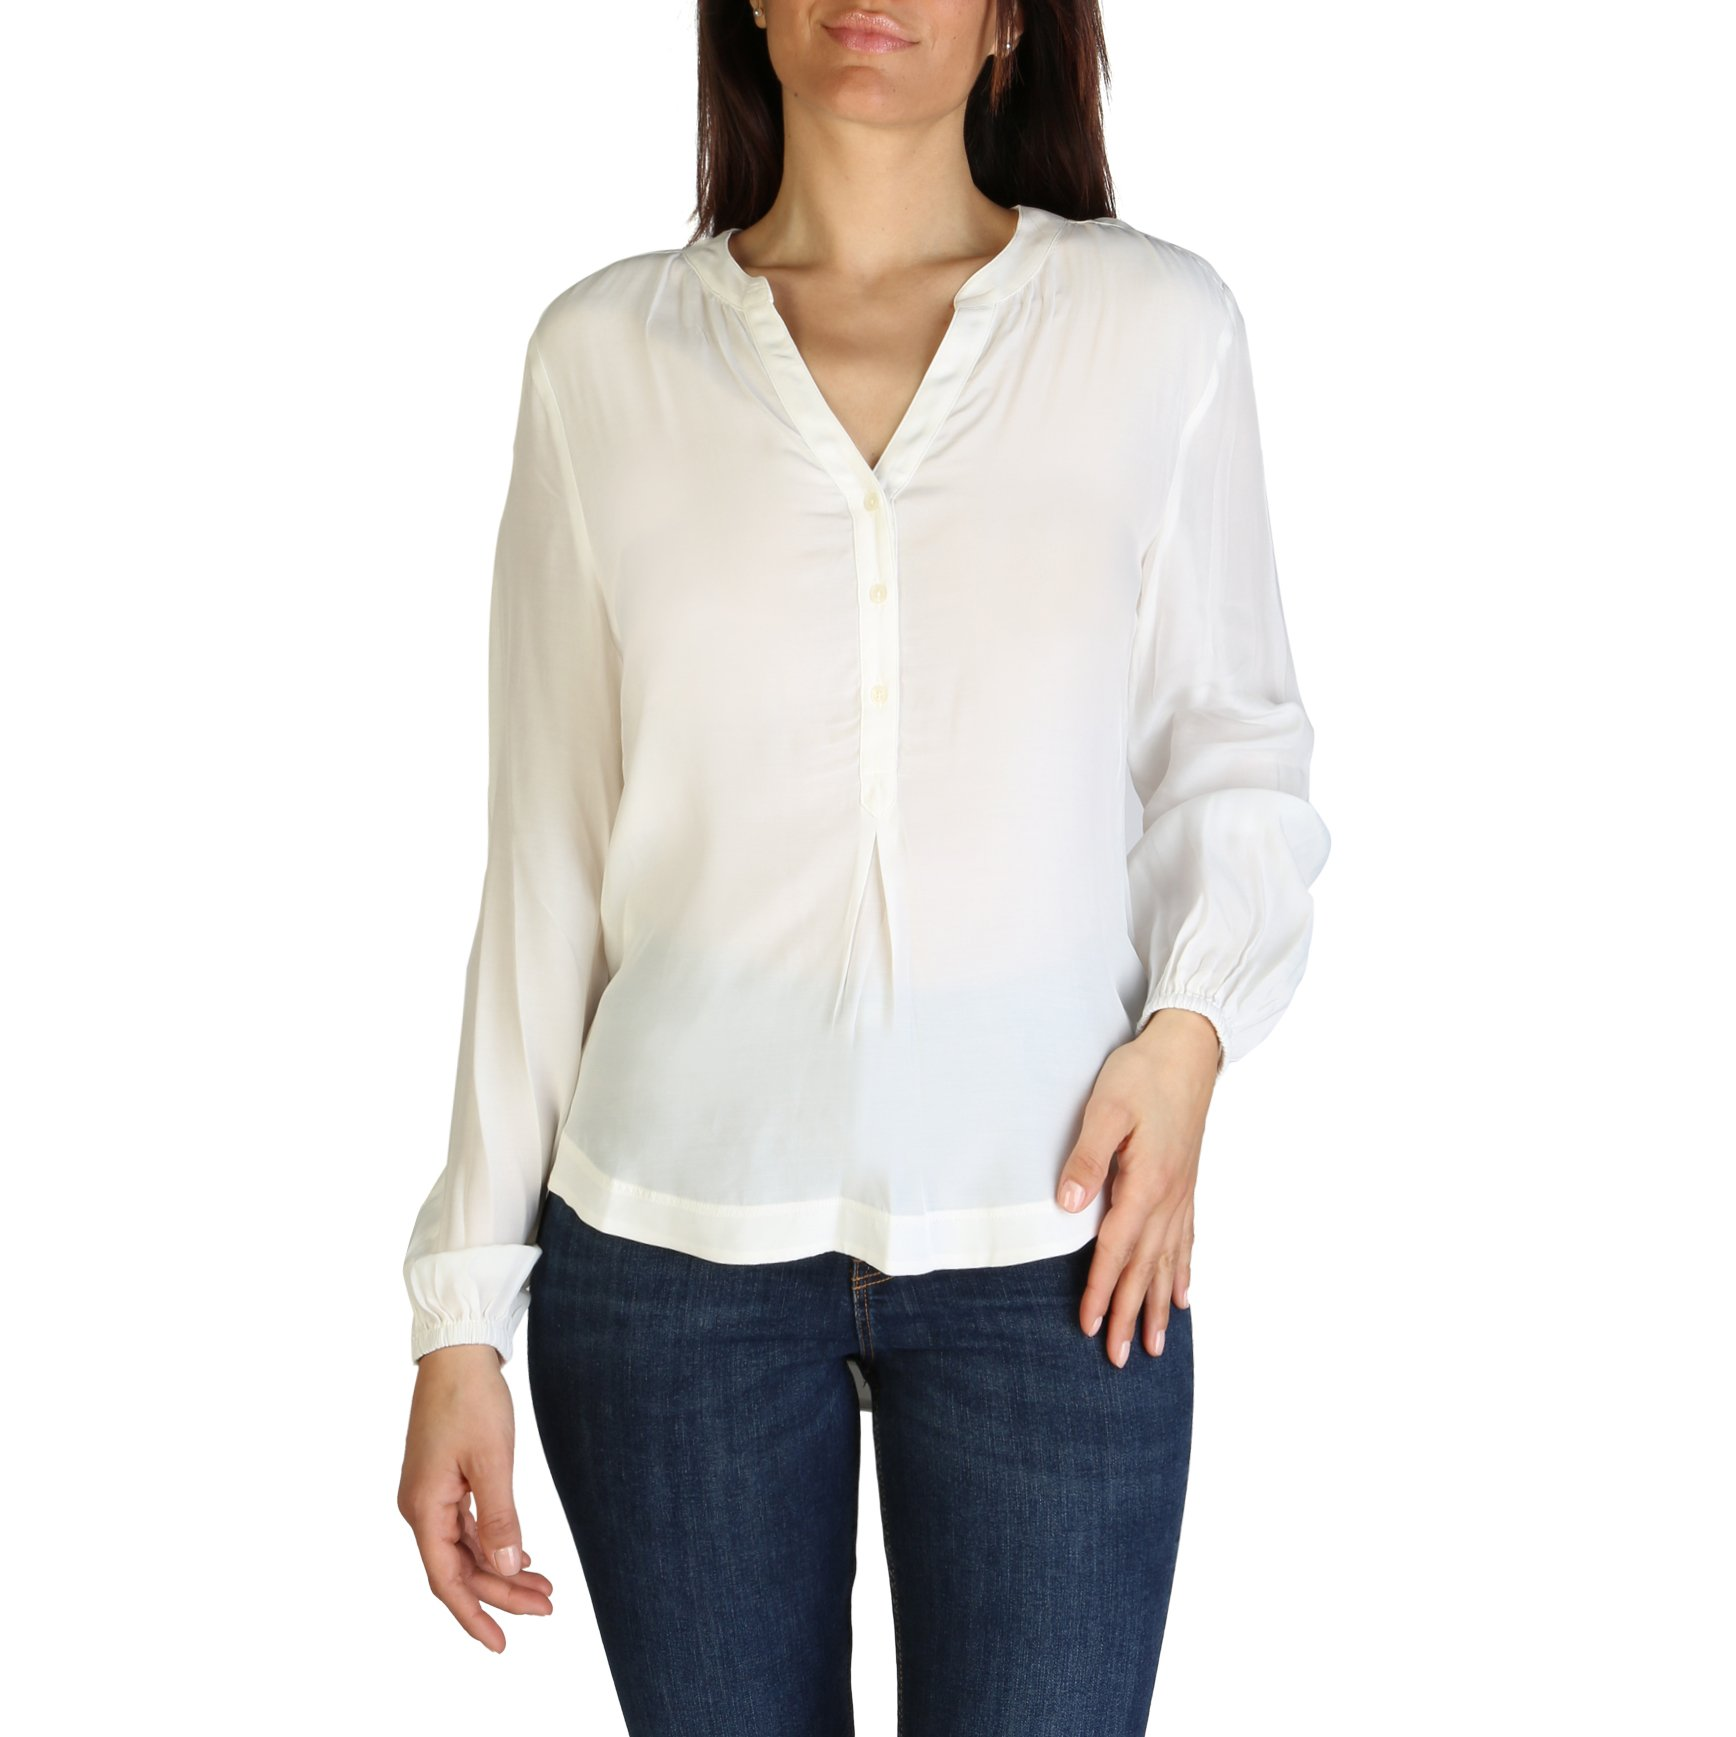 Tommy Hilfiger Women's Shirt Various Colours XW0XW01170 - white 4